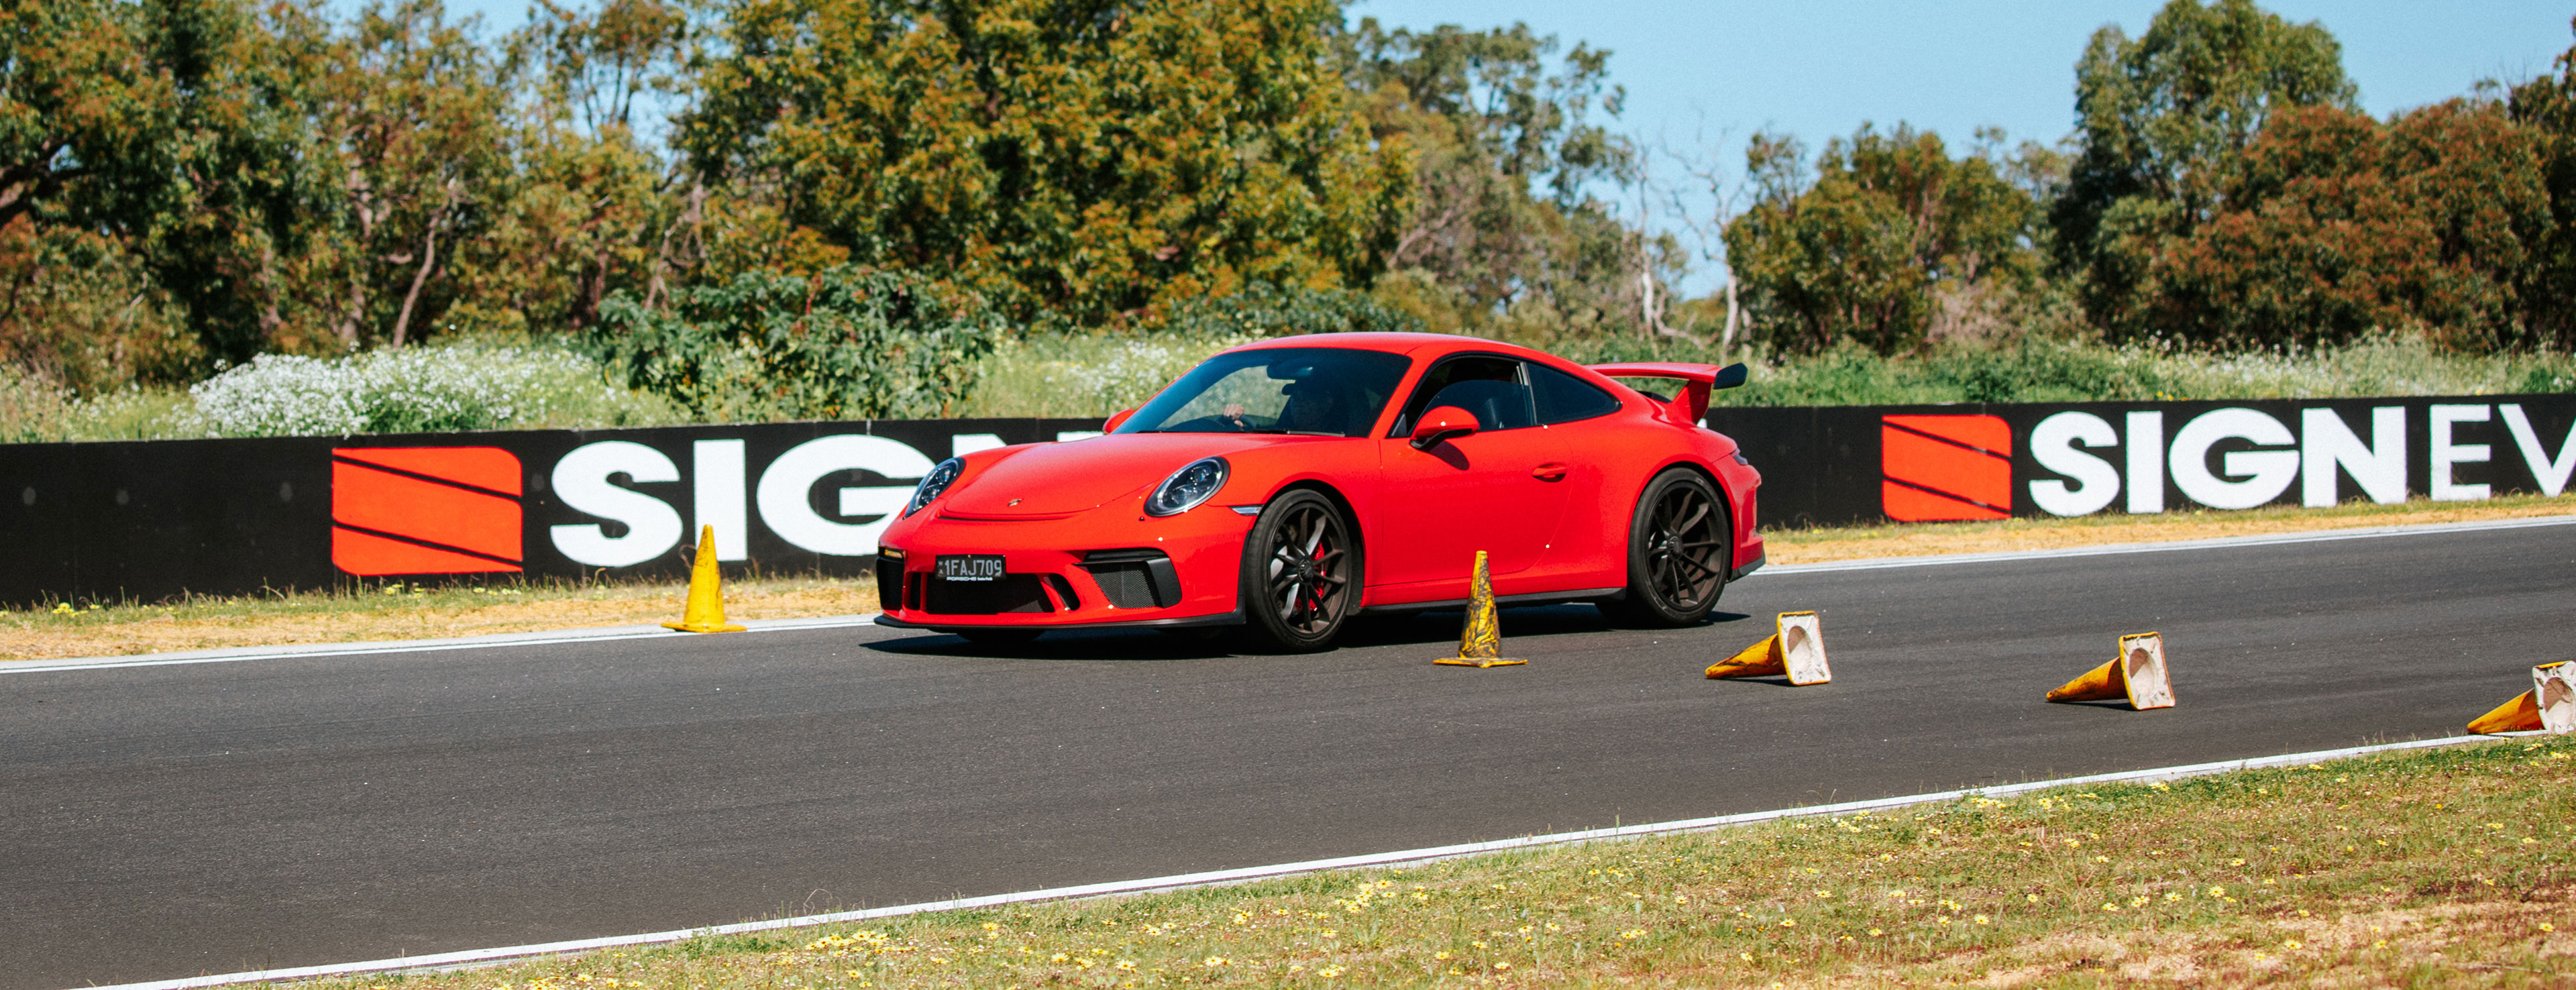 Porsche Advanced Driver Training Porsche Australia